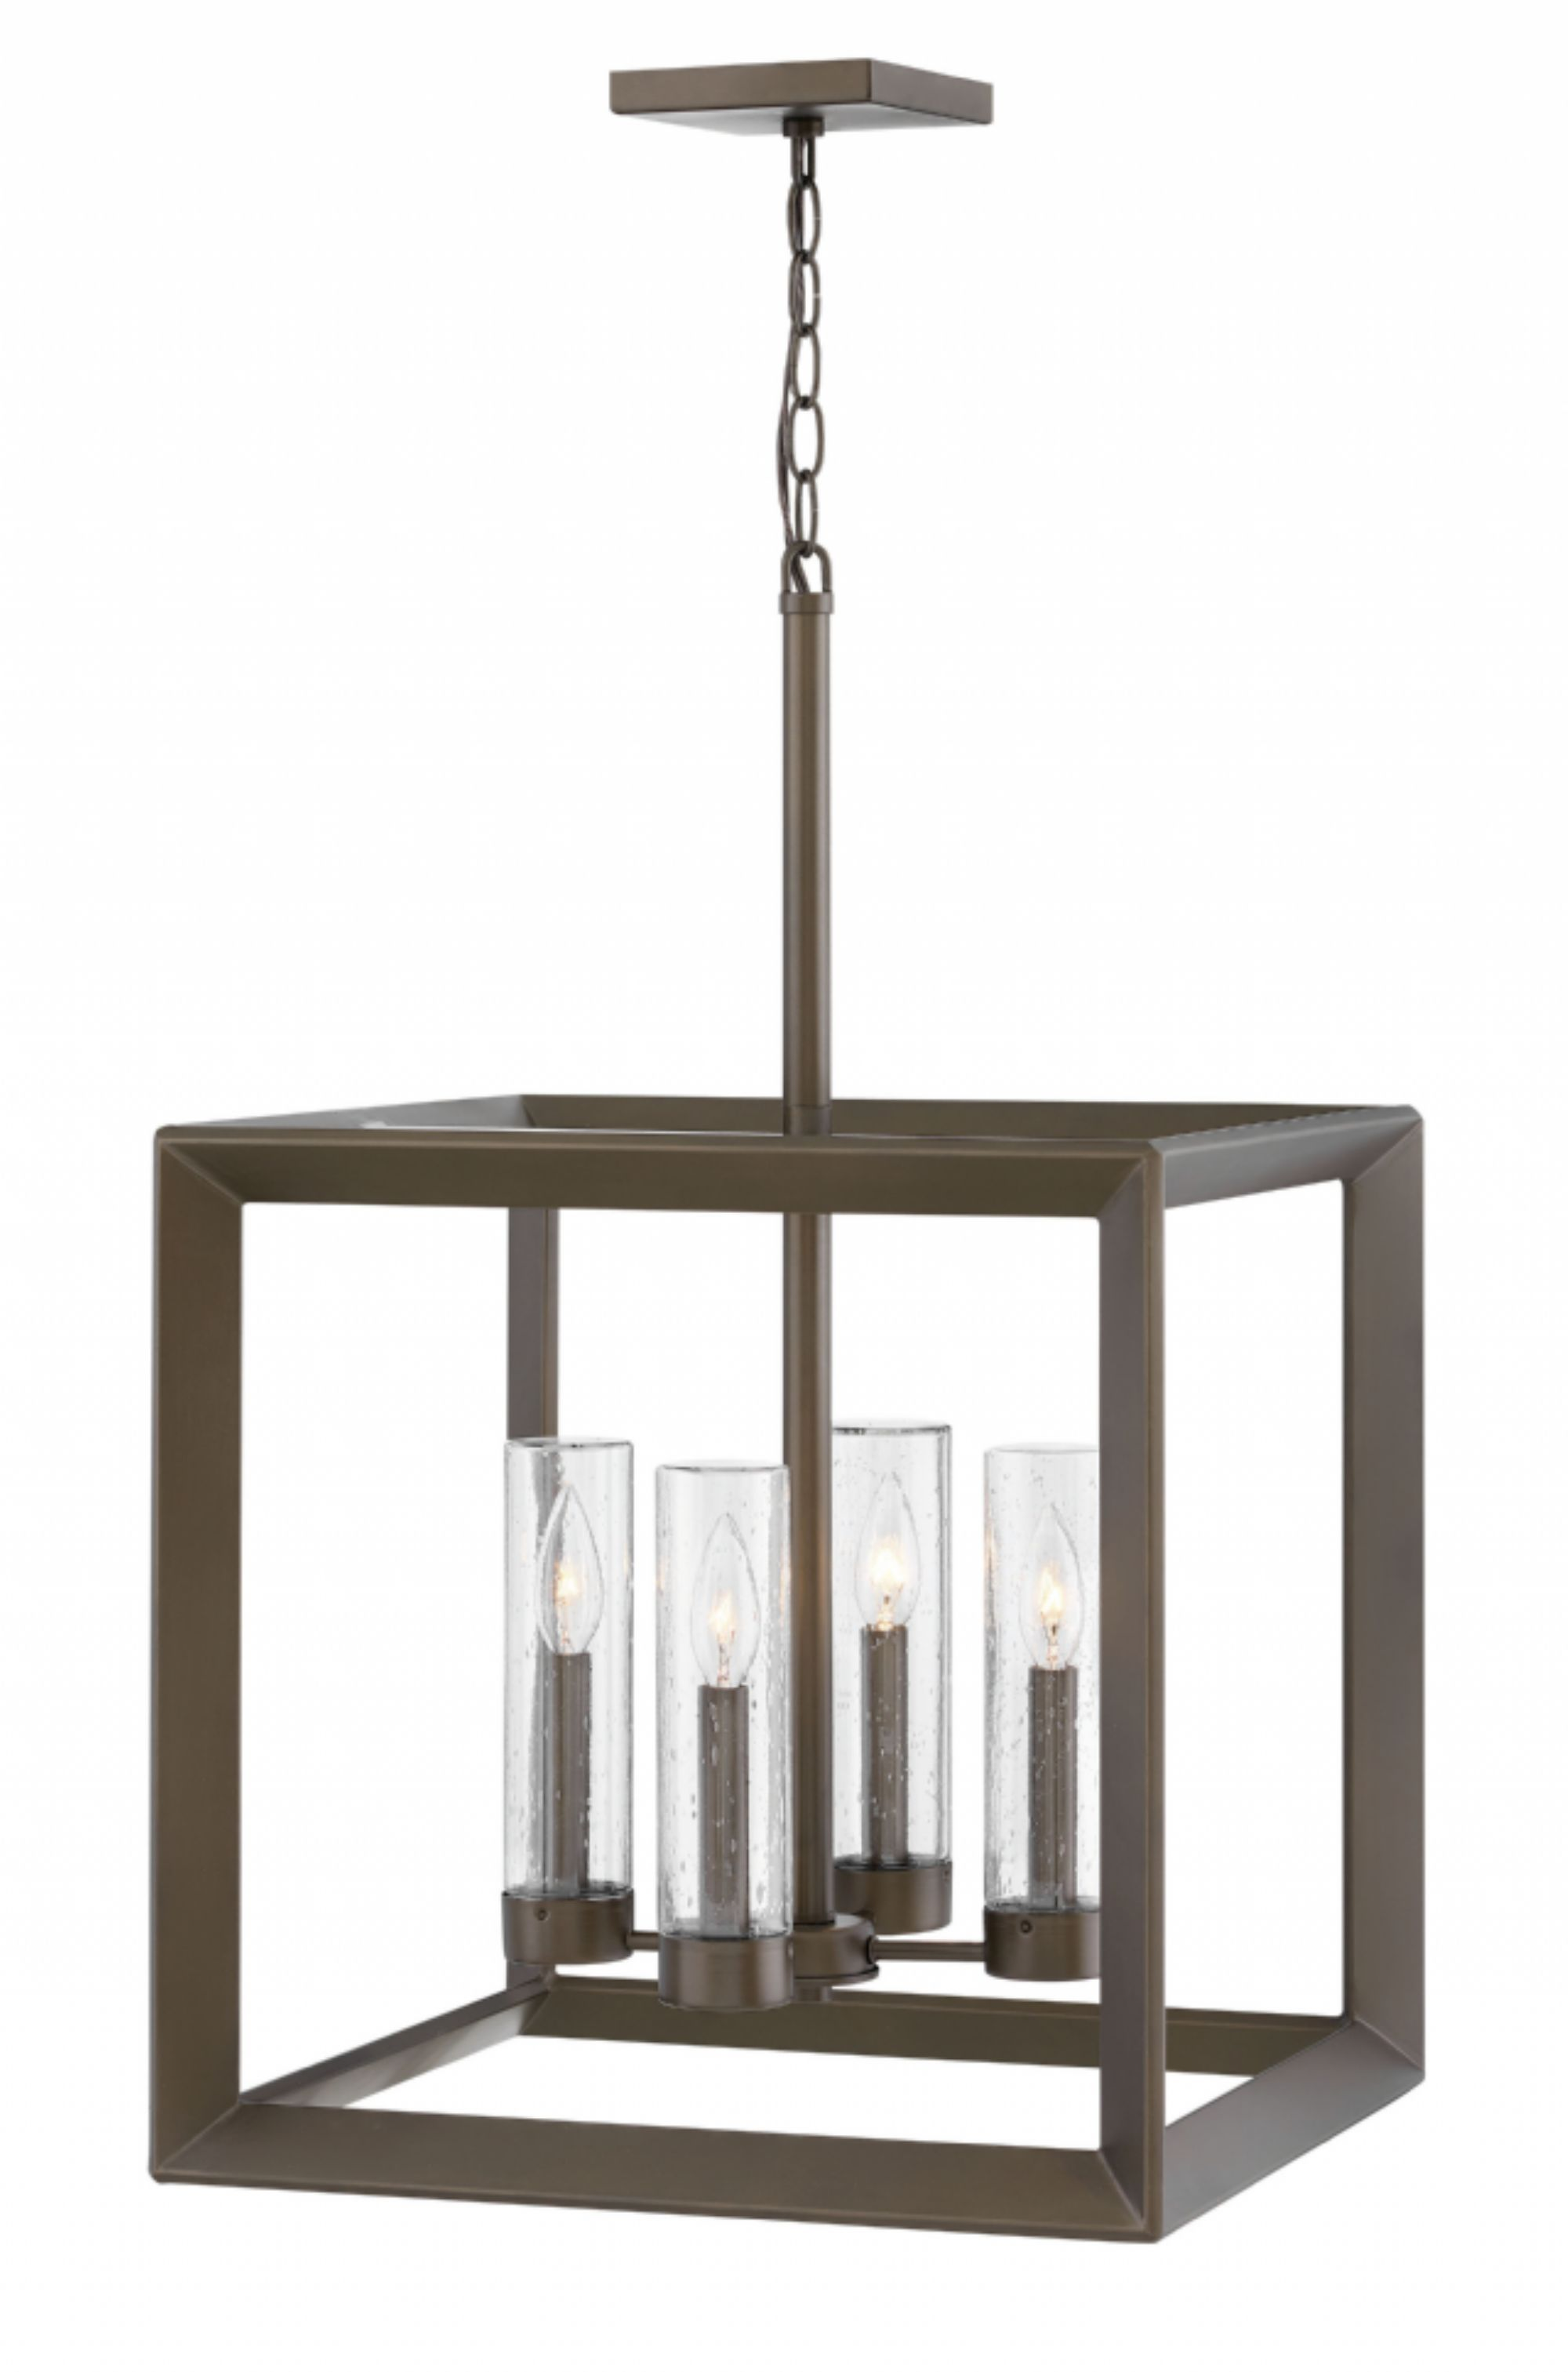 favorite fixture friday bright ideas lighting outdoor lighting rh pinterest com